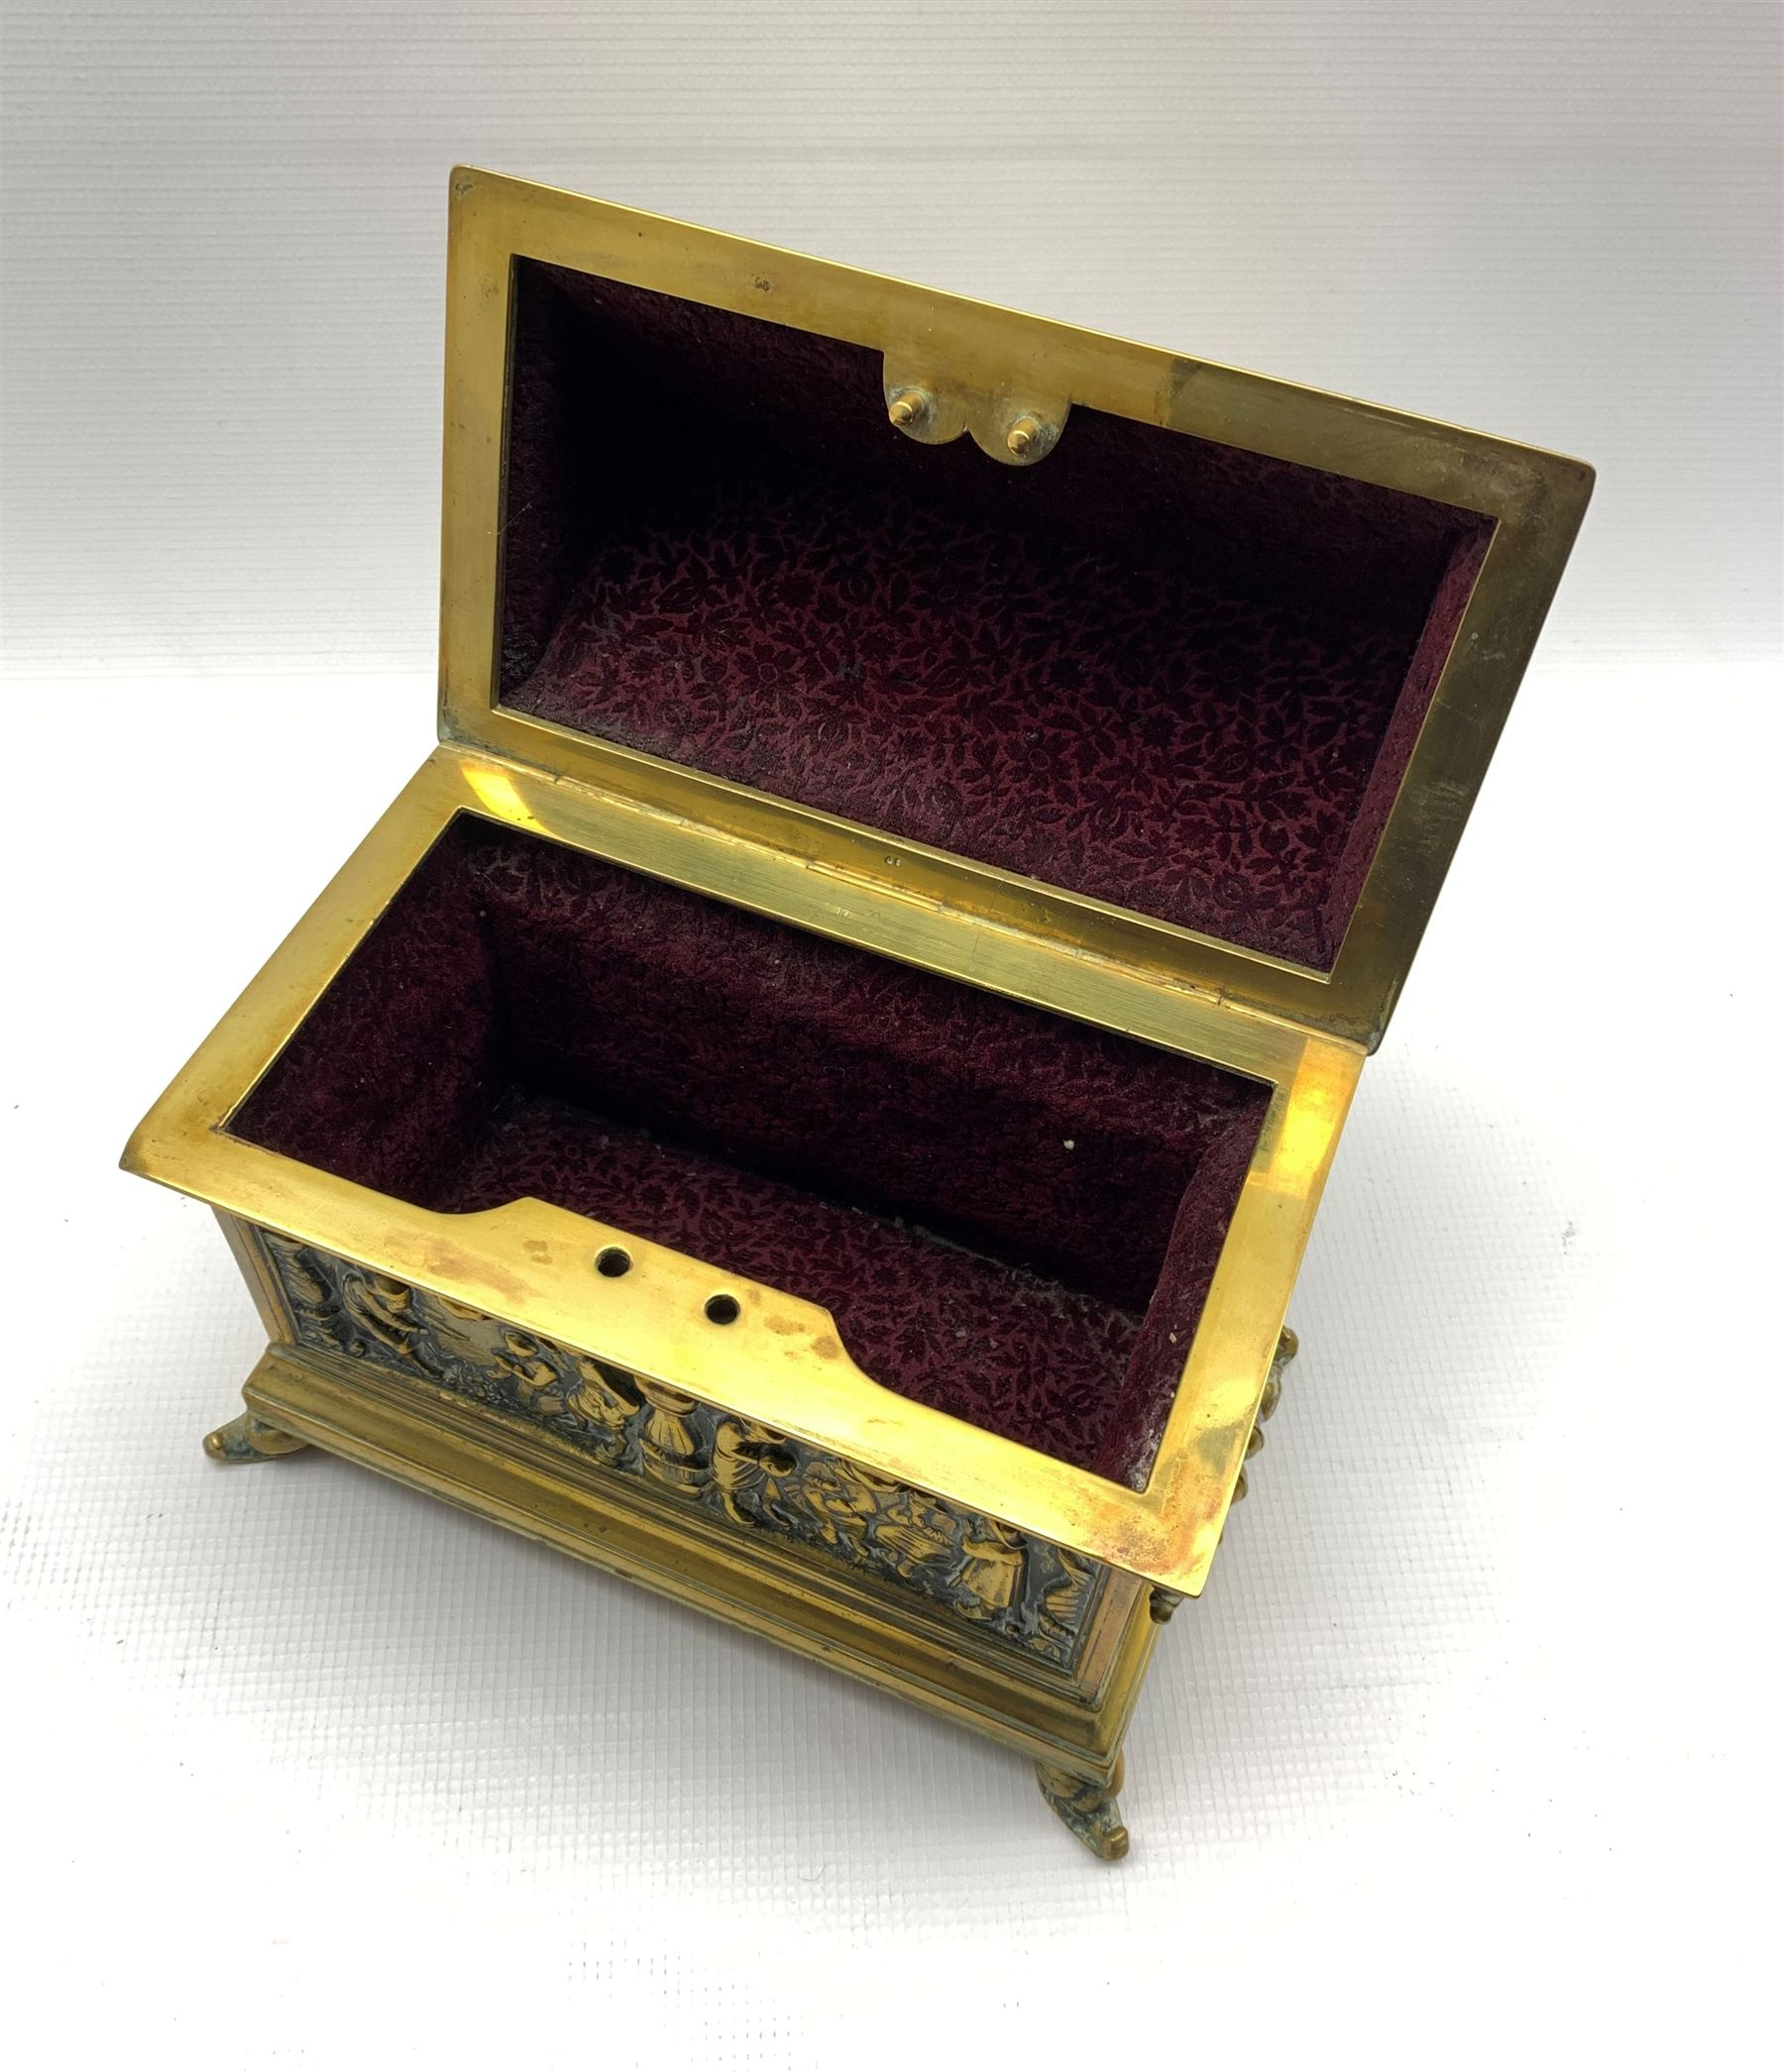 19th century twin-handled brass casket by Adolph Frankau & Co. - Image 3 of 4